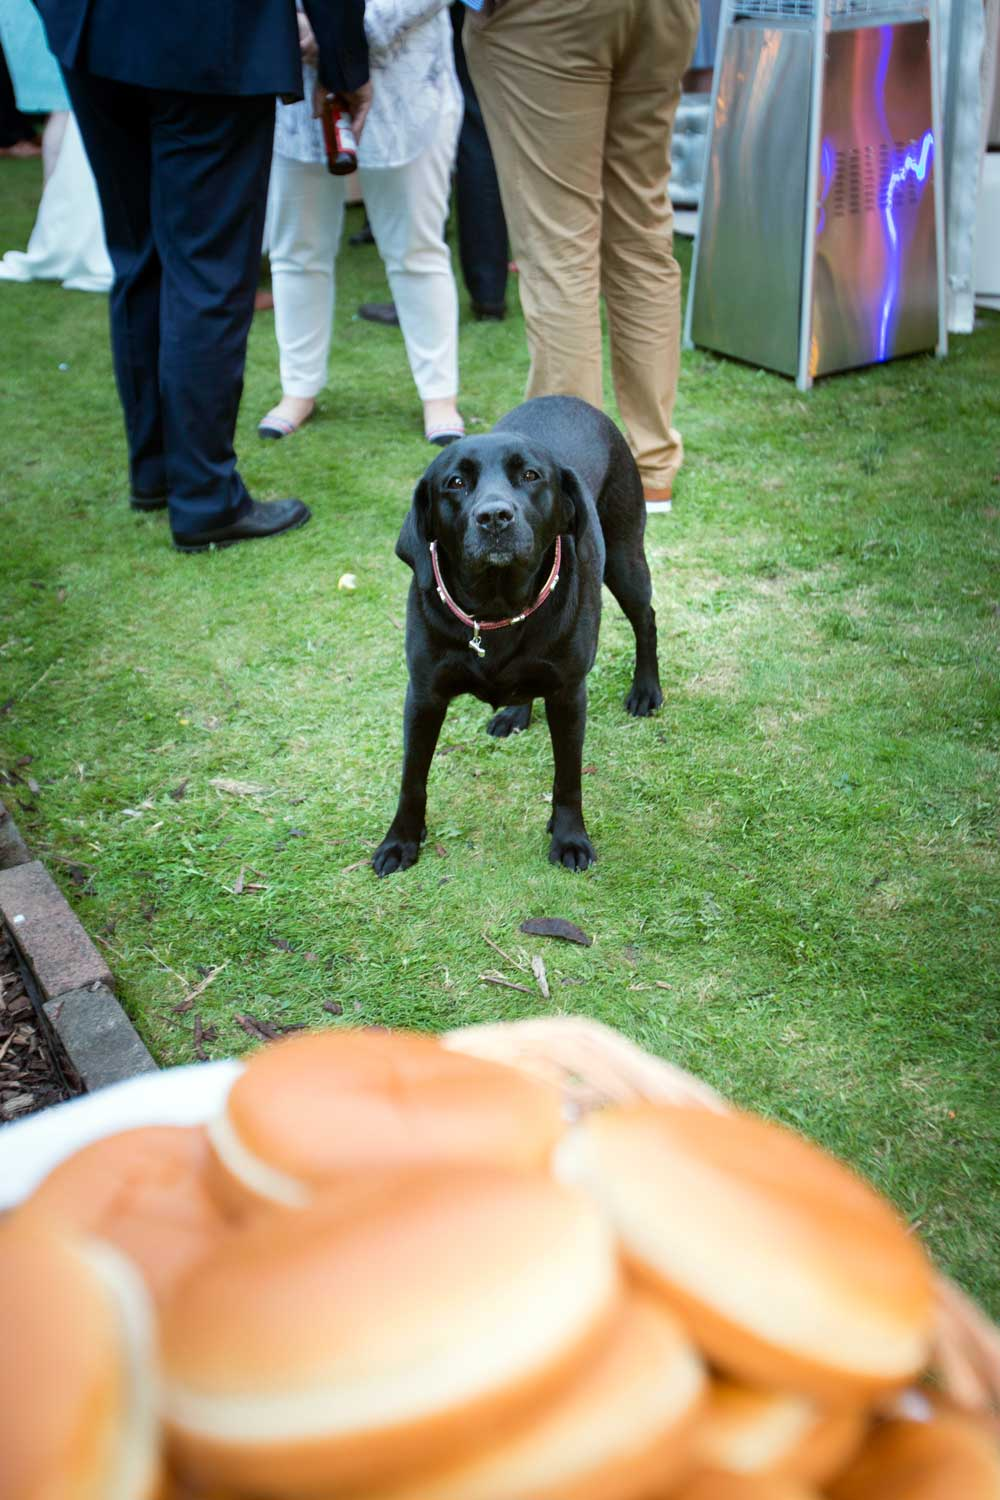 Cheeky Labrador eyeing the food.